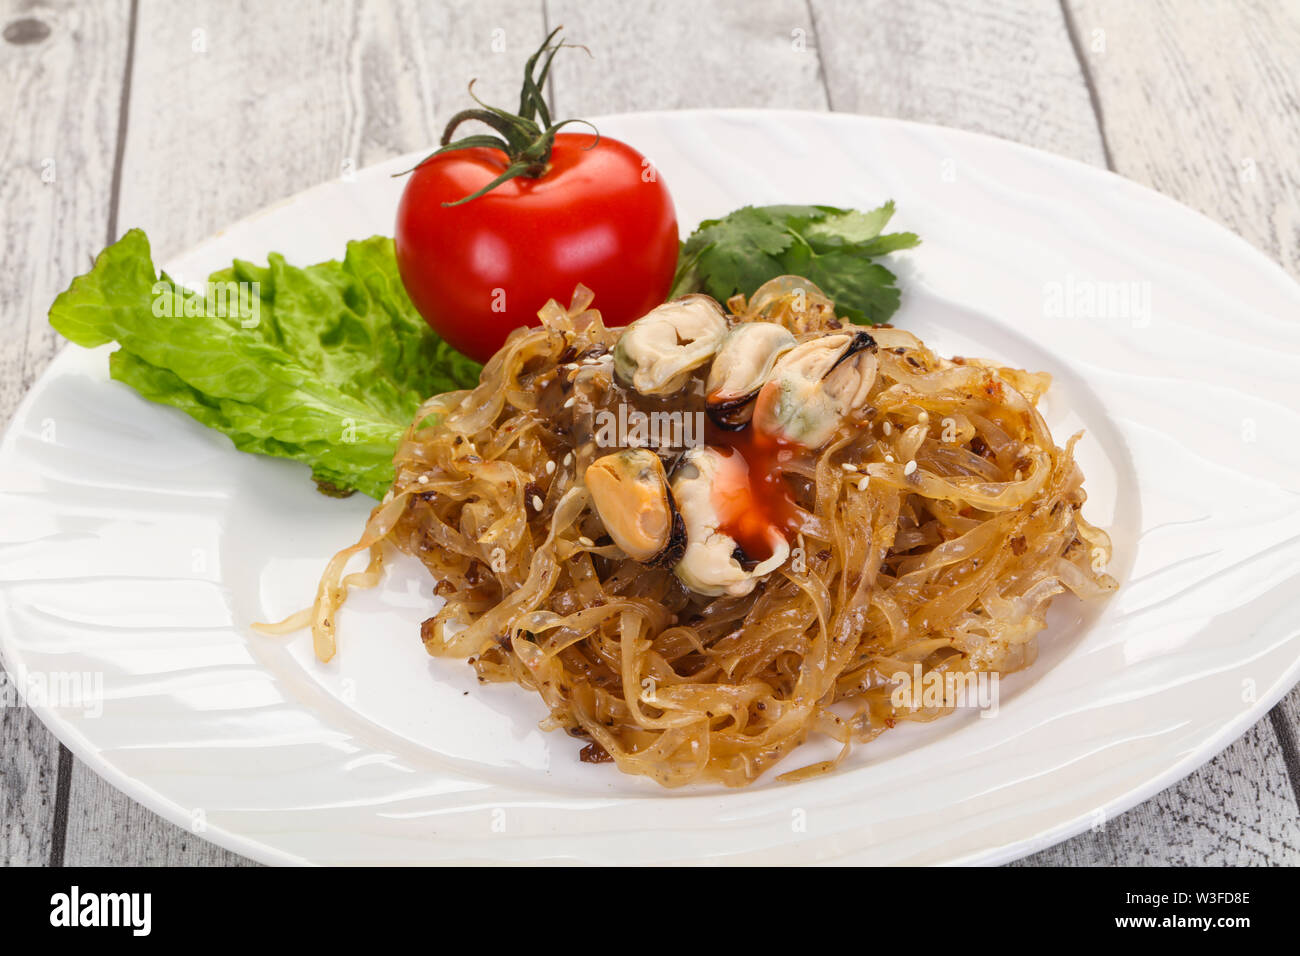 Wok noodle with mussels and sauce - Stock Image